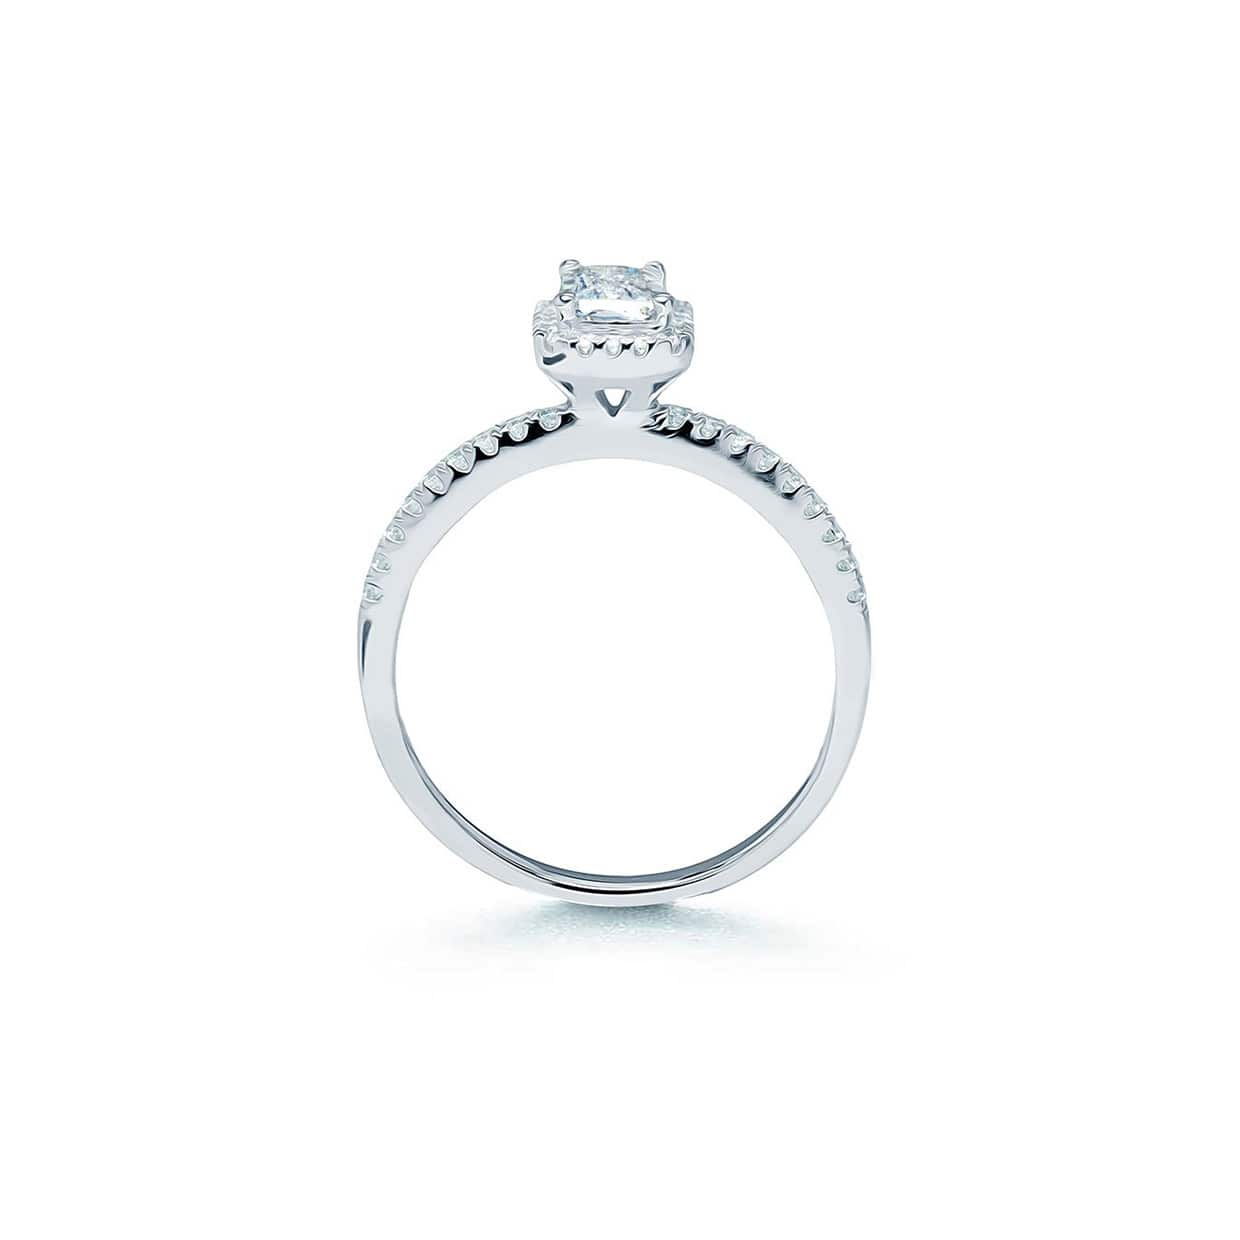 Oxford Classic Halo Radiant Ring - Abelstedt